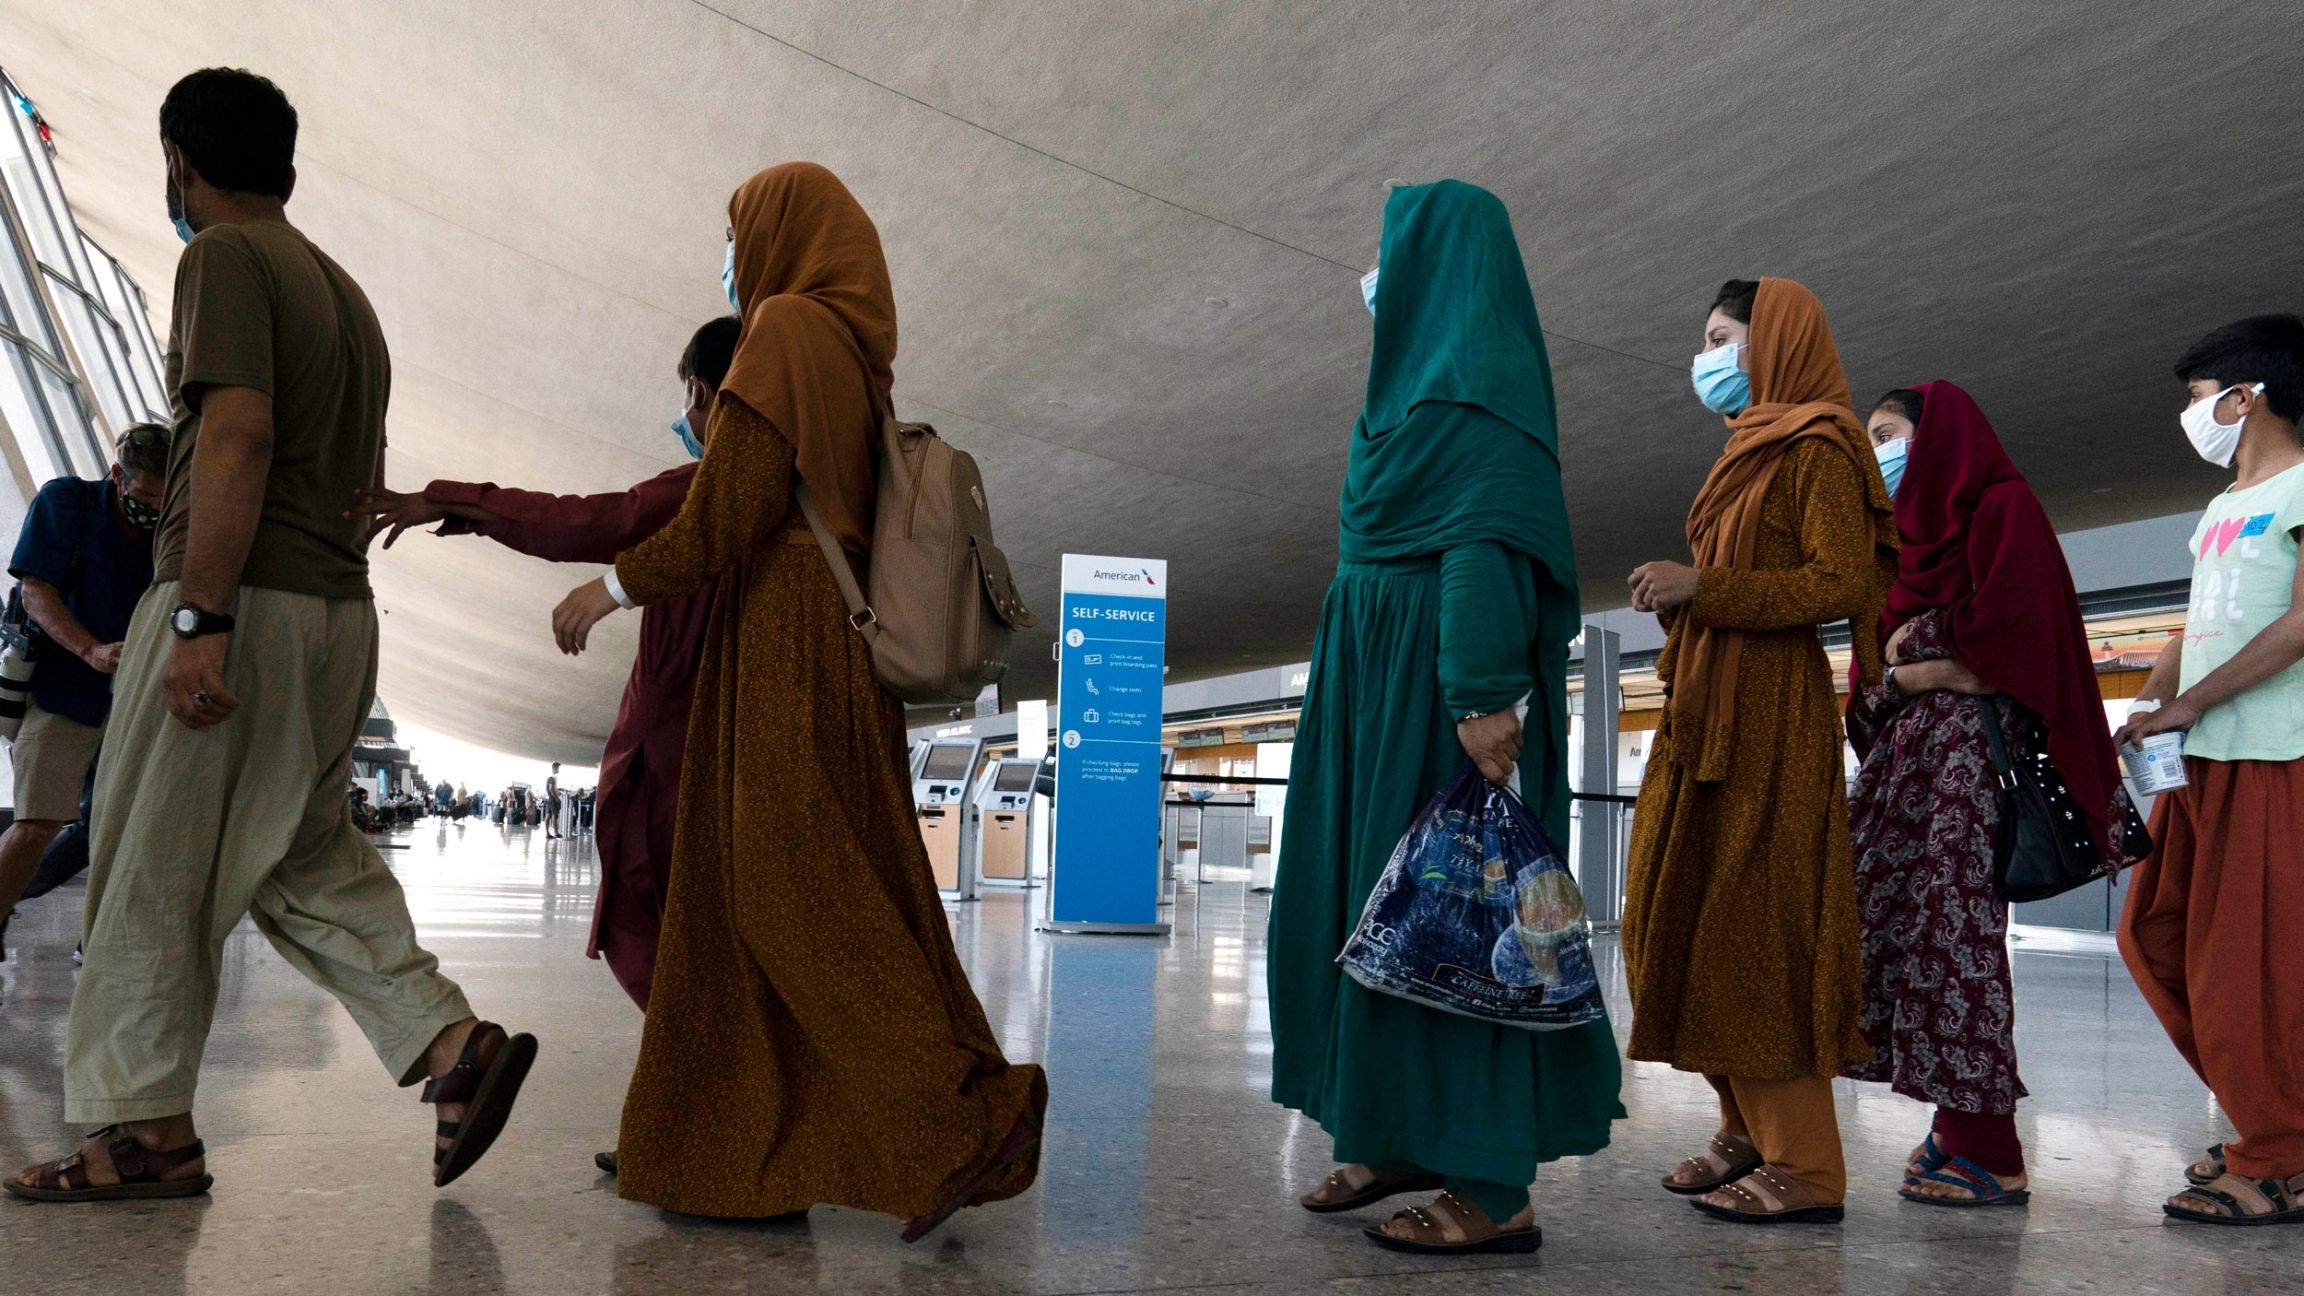 Families evacuated from Kabul, Afghanistan, walk through the terminal before boarding a bus after they arrived at Washington Dulles International Airport, in Chantilly, Virginia, on Friday, Aug. 27, 2021.